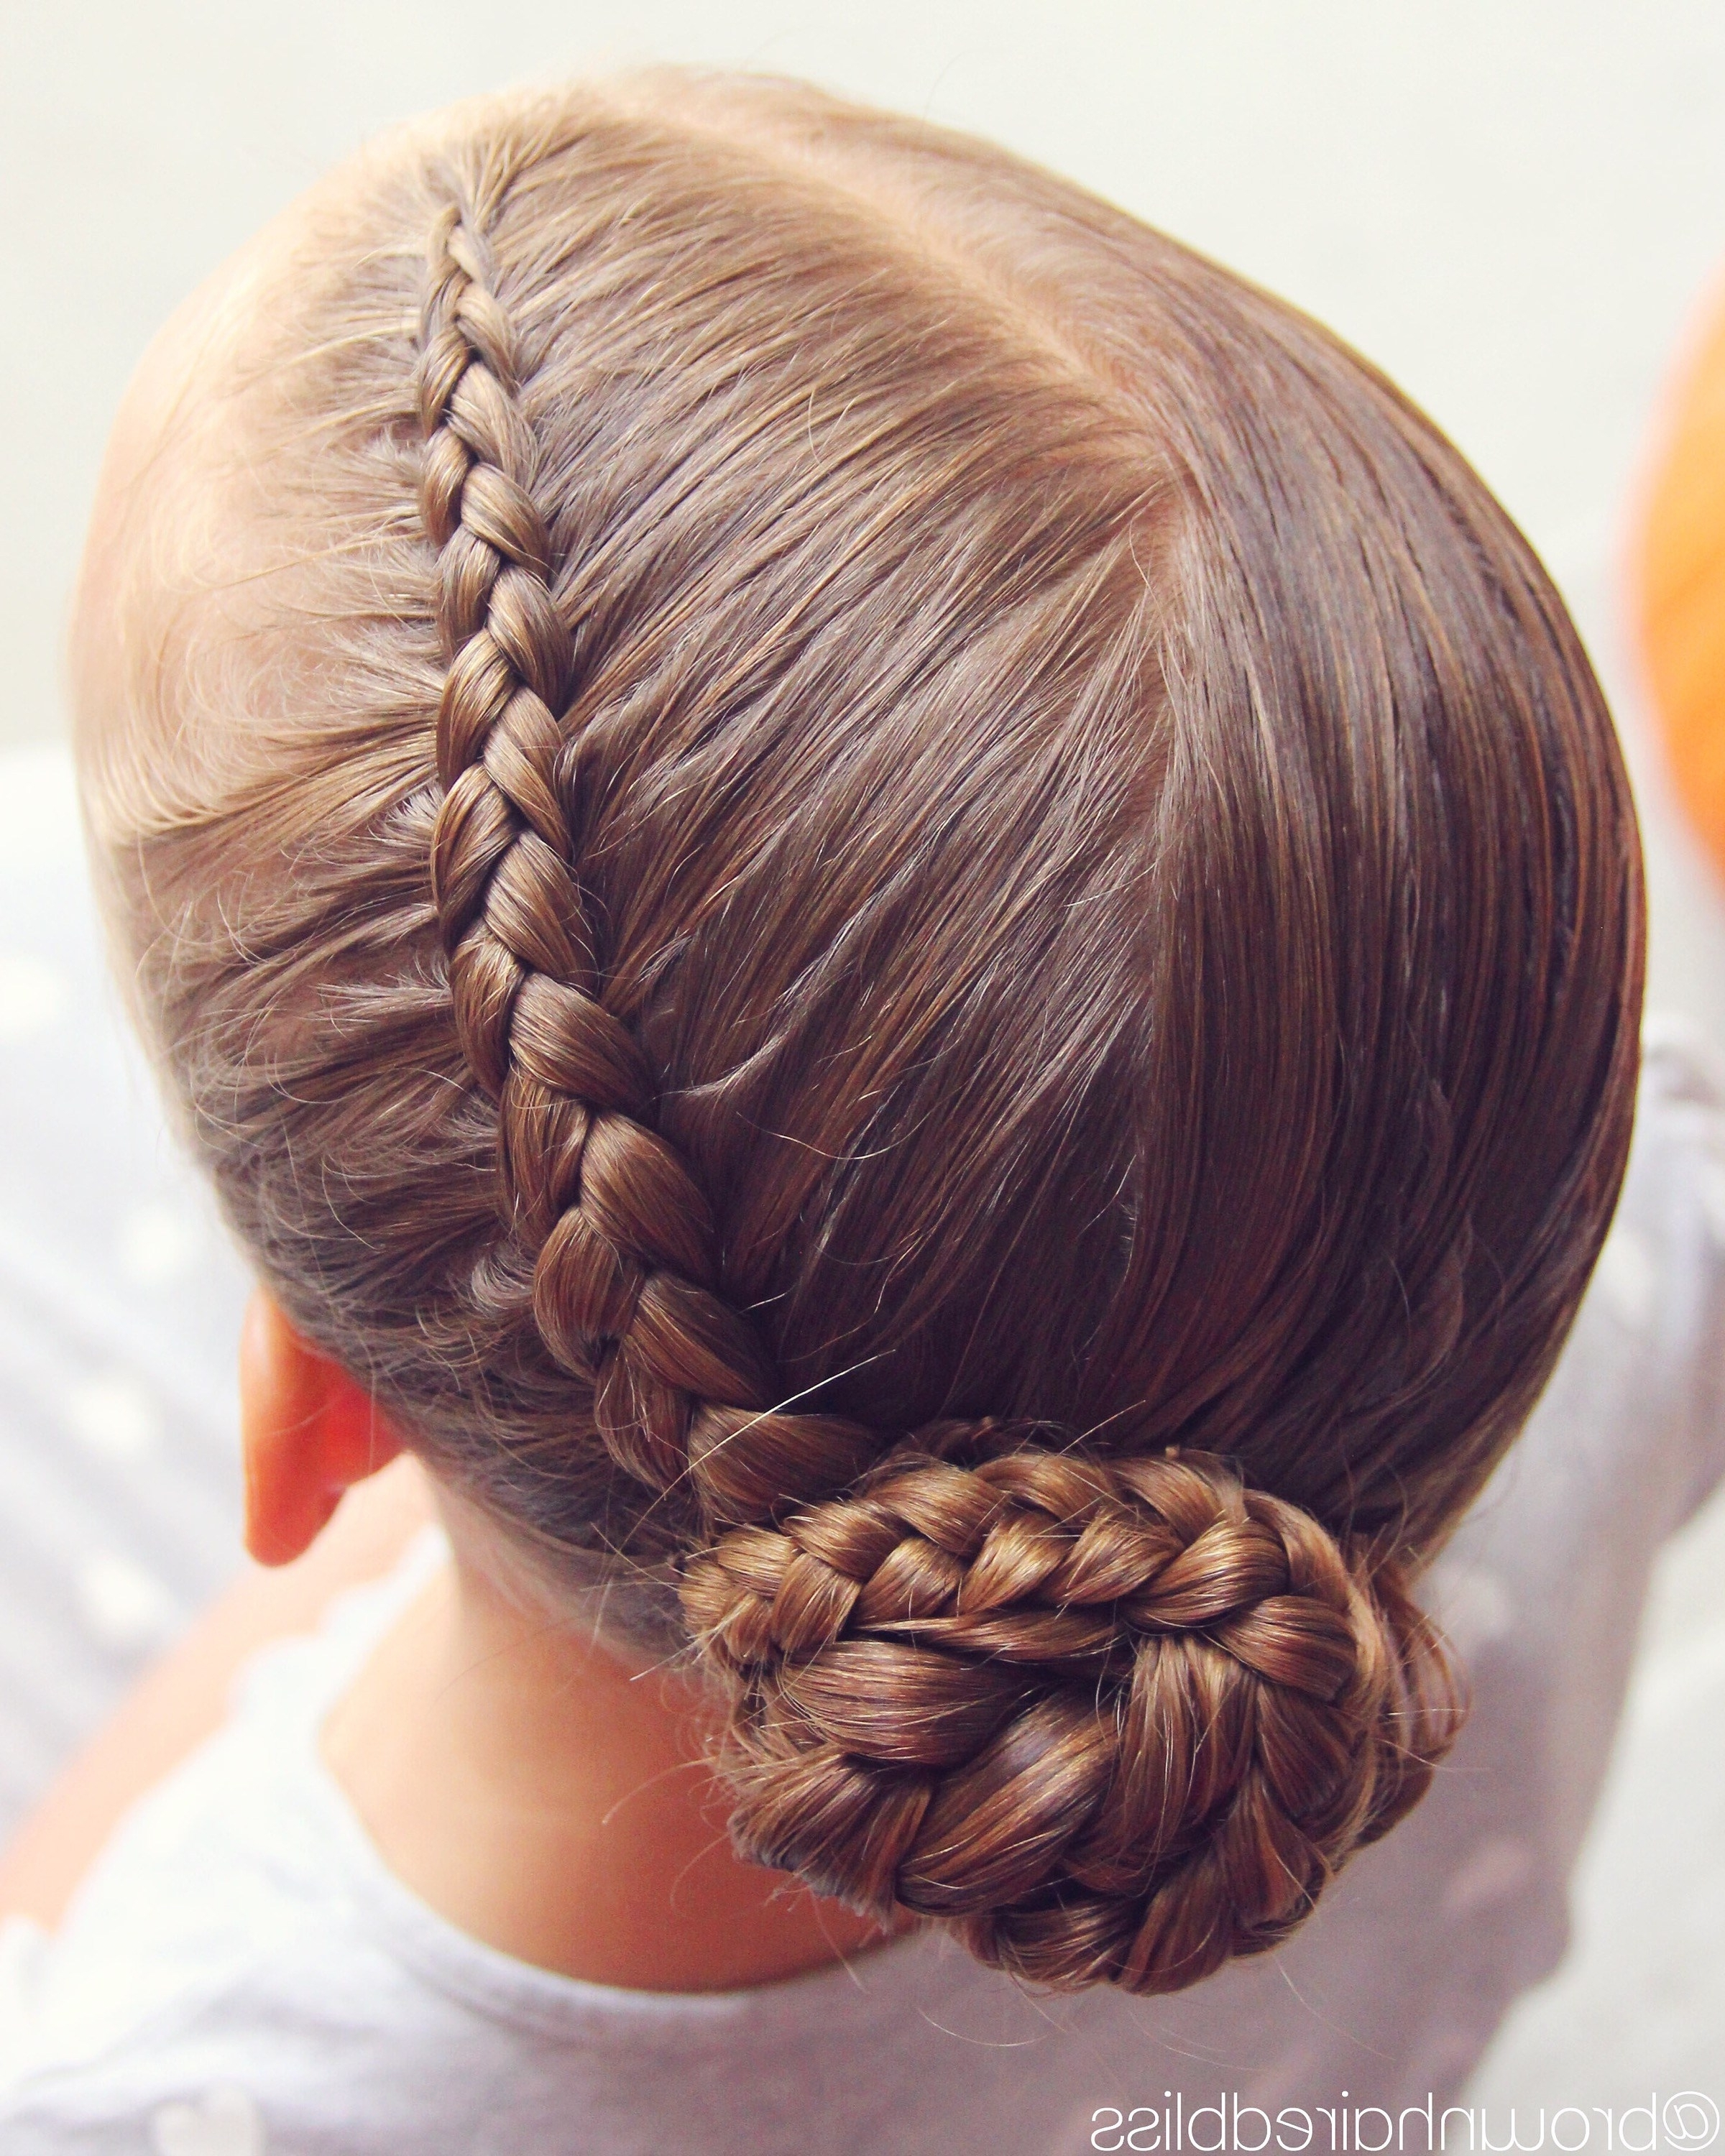 Diagonal Dutch Braid Into A Side Braided Bun – Throughout Newest Diagonal French Braid Hairstyles (View 5 of 15)